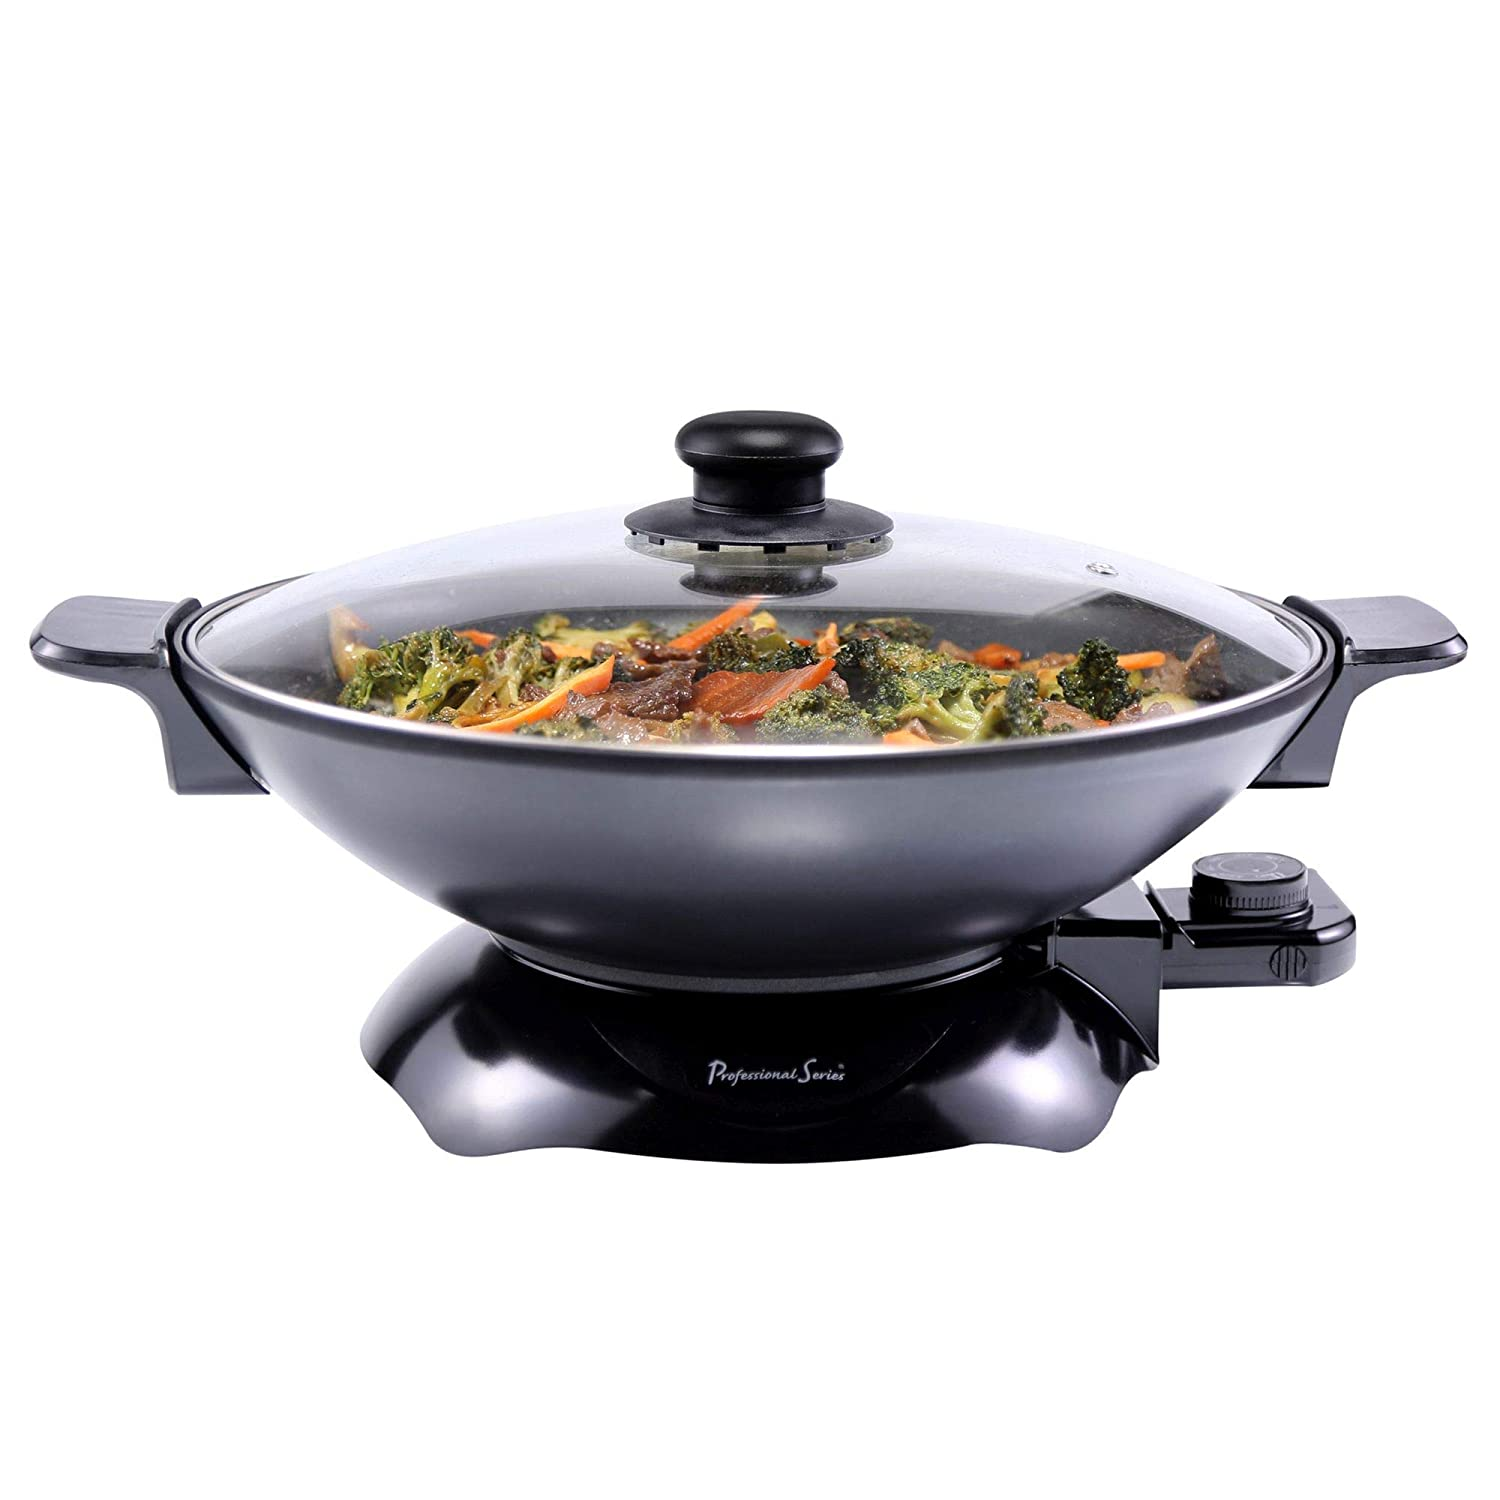 Continental Electric PS-SK319 Chef Electric Wok 4.5 Quart Black